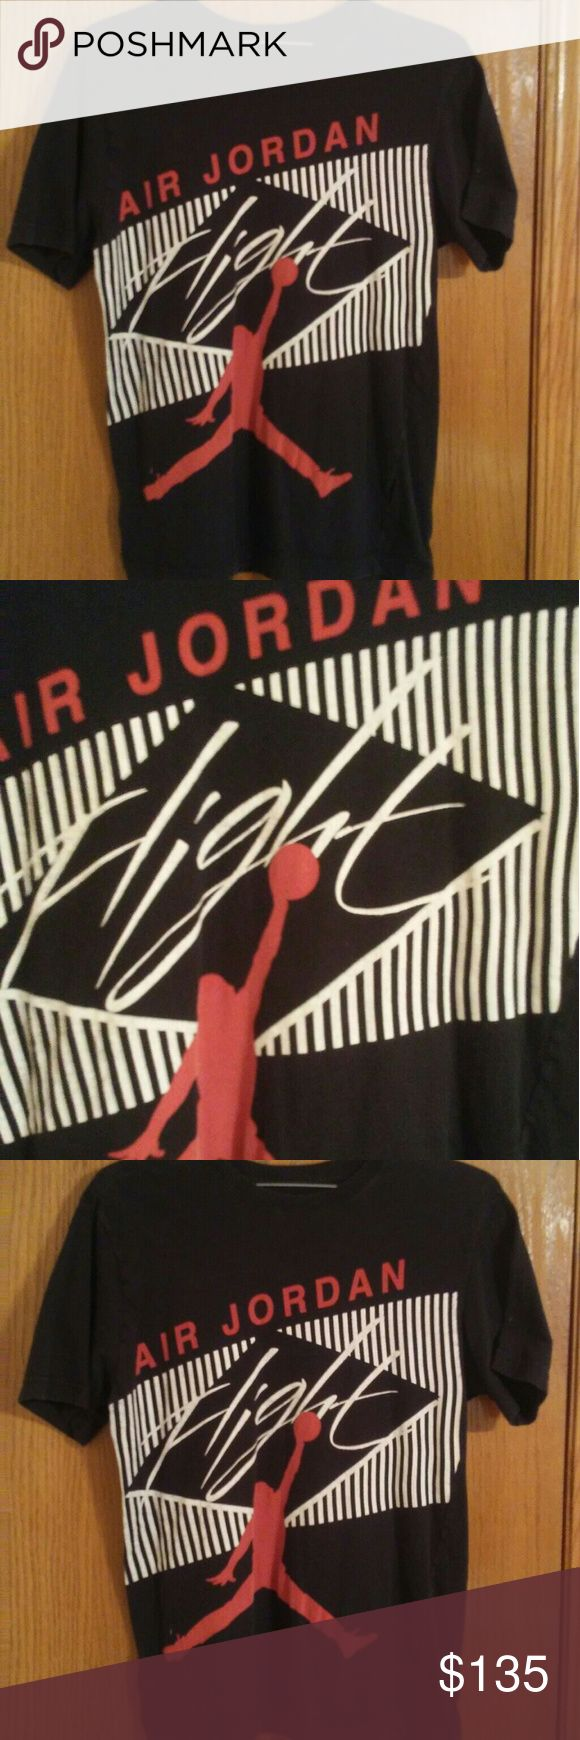 Vintage Air Jordan t shirt hard to find flight t This is an extremely hard to find Air Jordan t shirt please see pic as it does have a small rip in seam easily fixed...try finding another one like it:) make an offer michael Jordan Shirts Tees - Short Sleeve